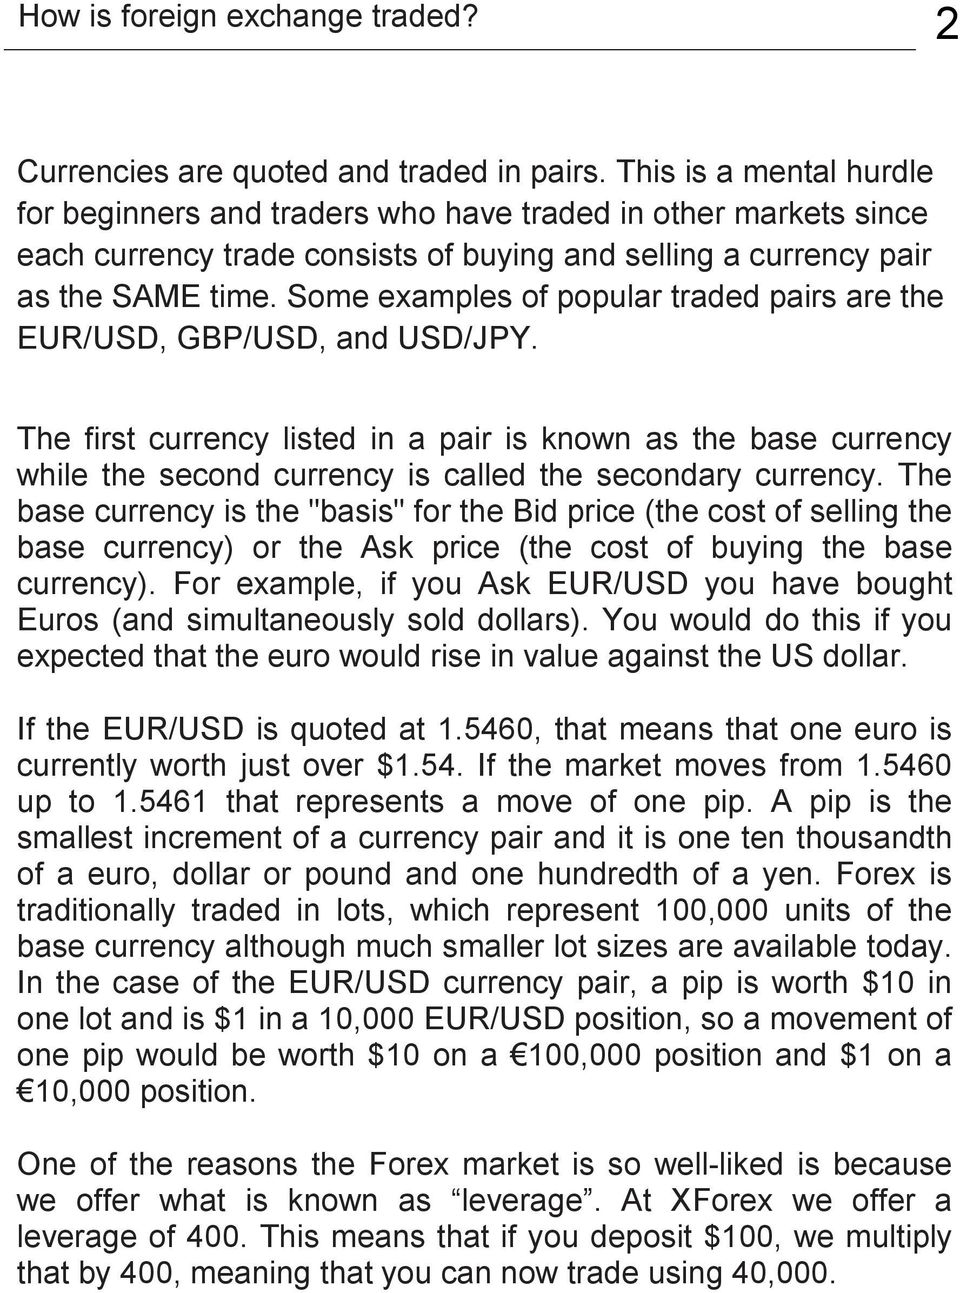 Some examples of popular traded pairs are the EUR/USD, GBP/USD, and USD/JPY.